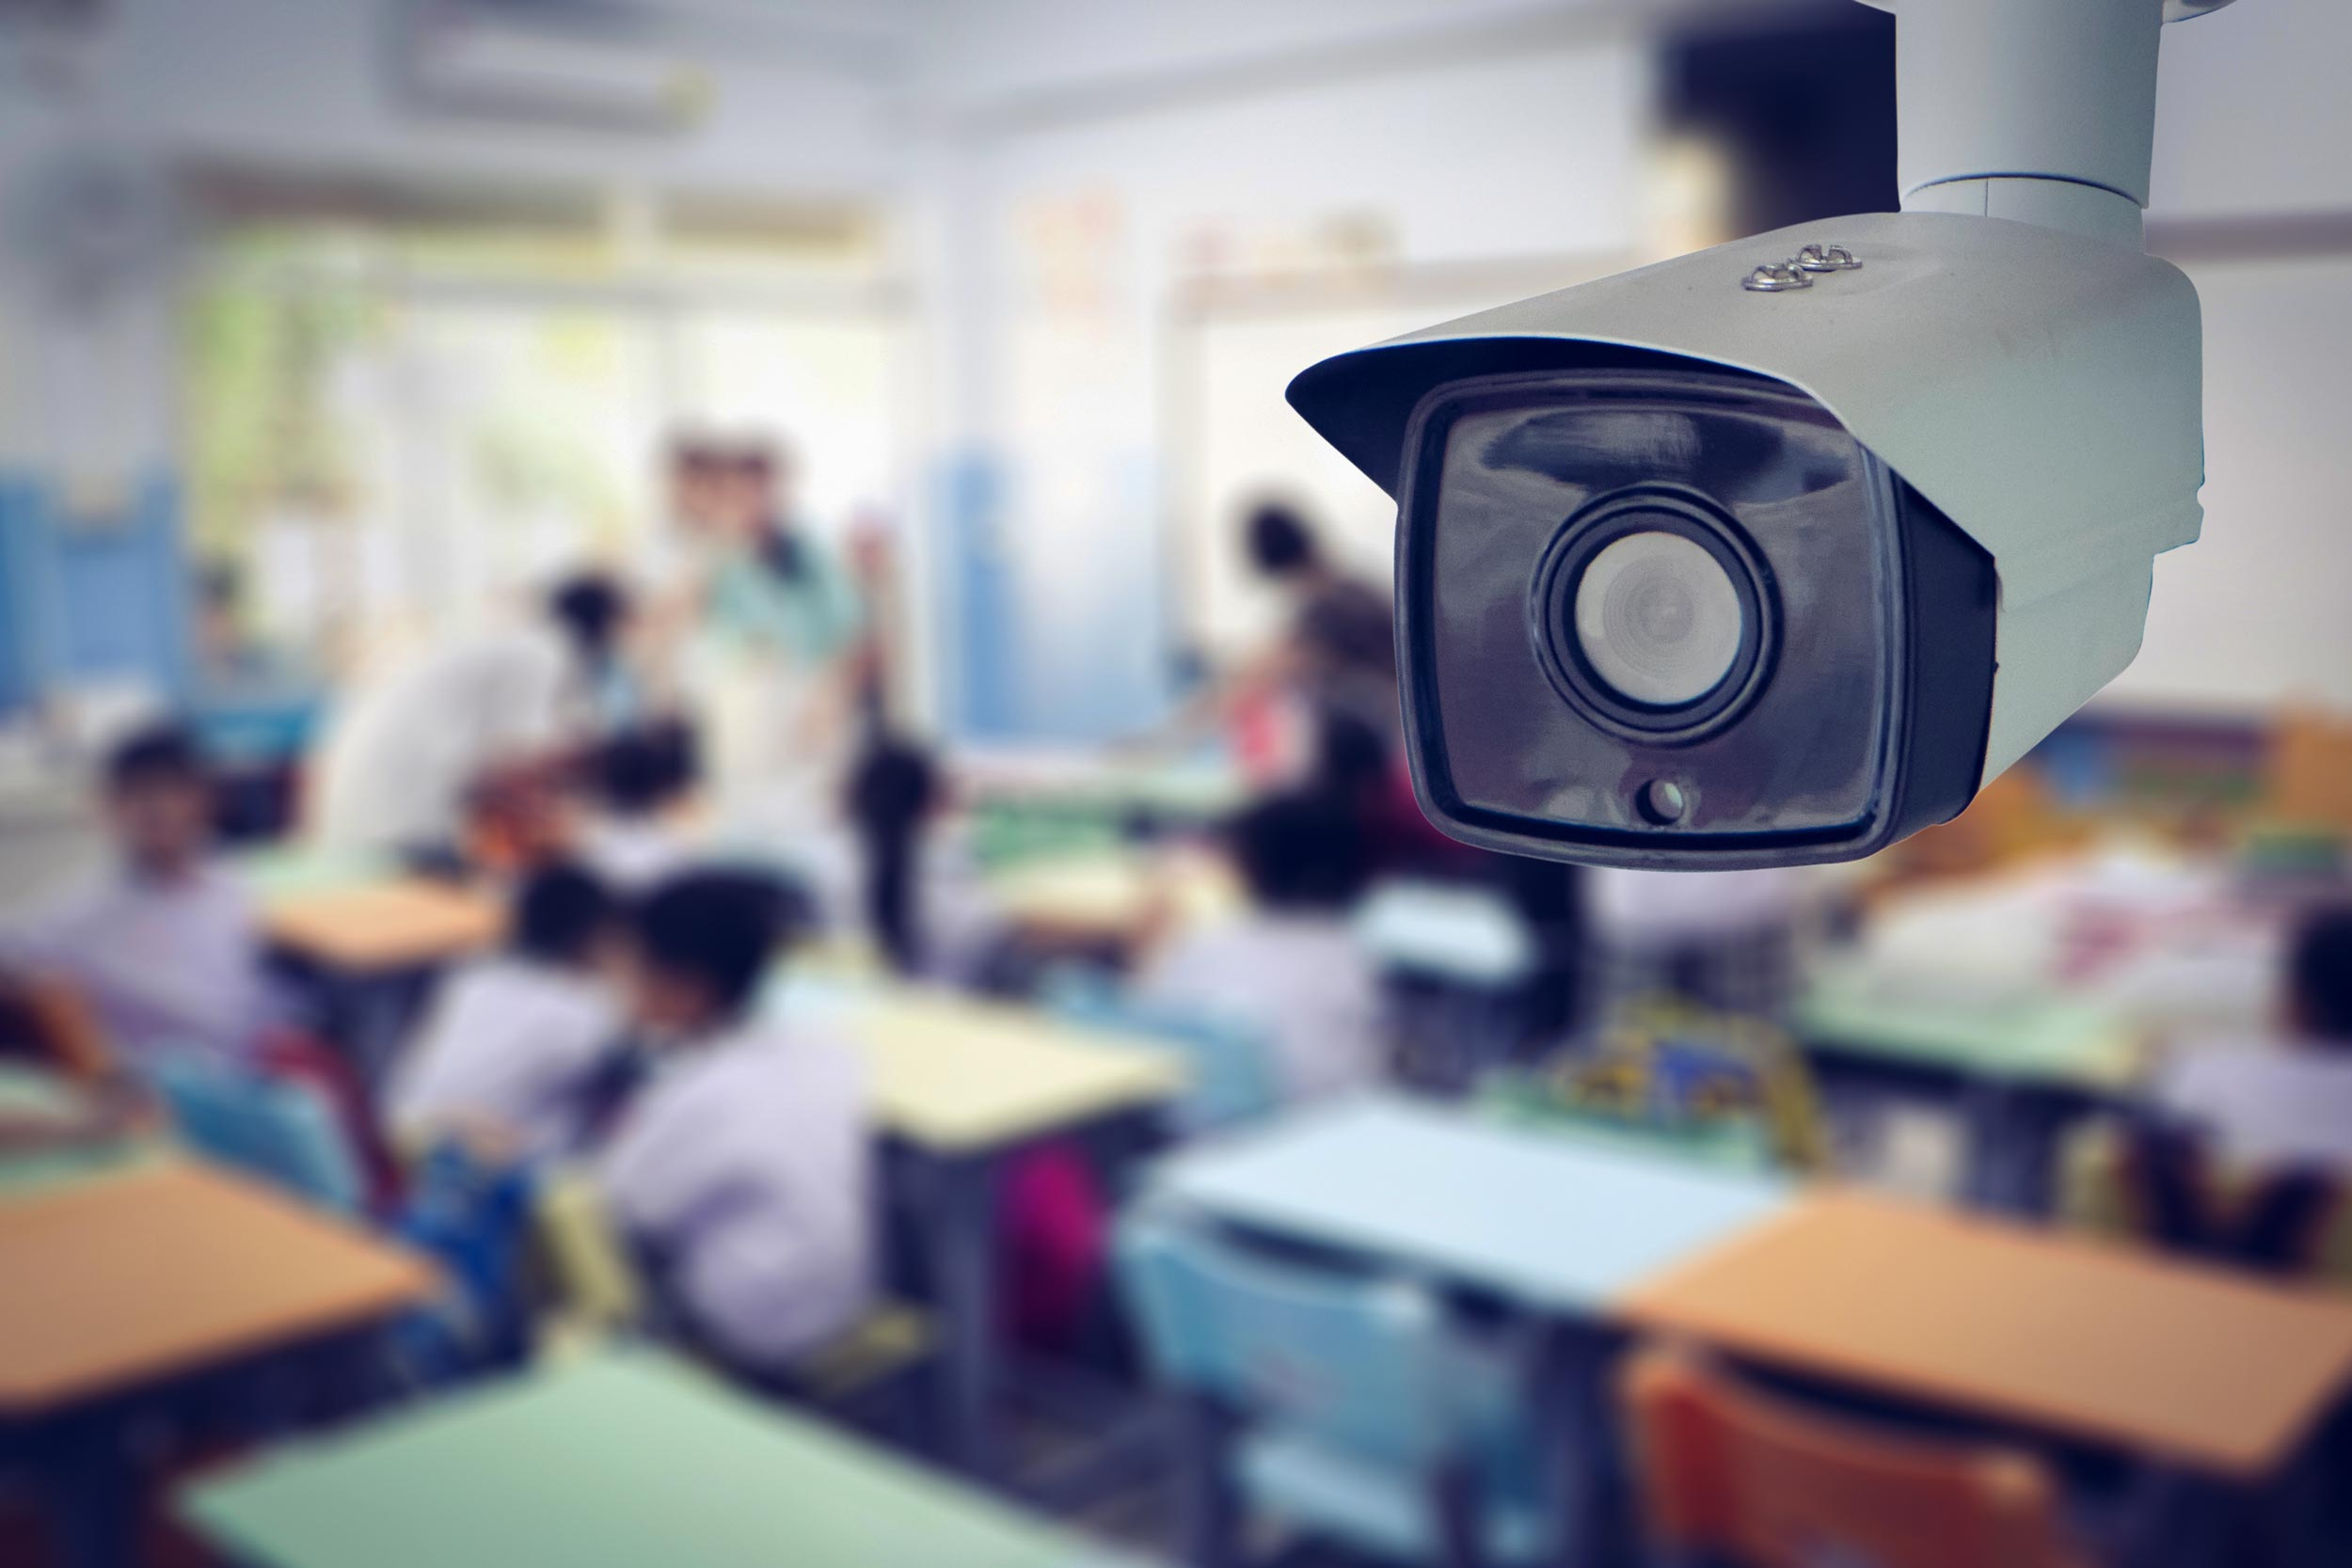 Do Security Cameras in Public Schools Make Students Feel Safer?